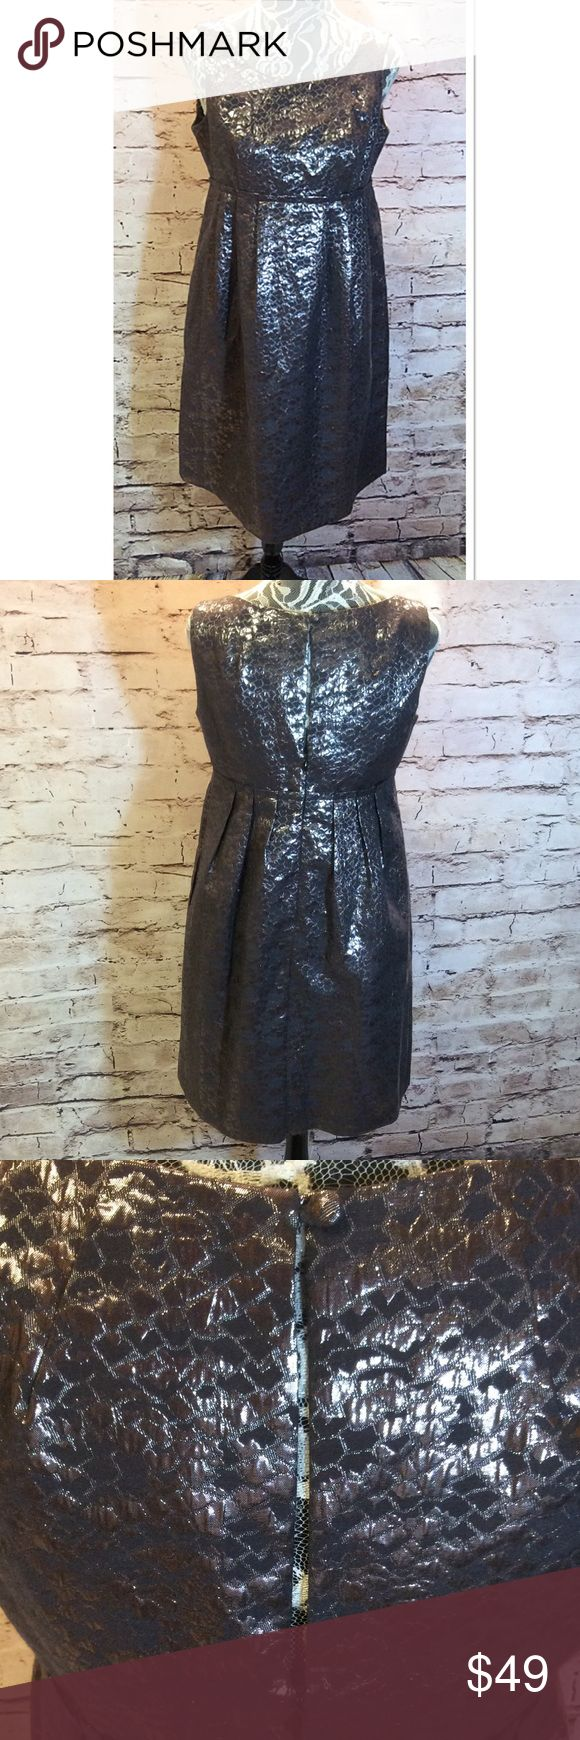 SZ 8 LONDON TIMES SILVER METALLIC DRESS This is beautiful and classy. Metallic material with an empire waist. Button and zip at the back with a slit opening between London Times Dresses